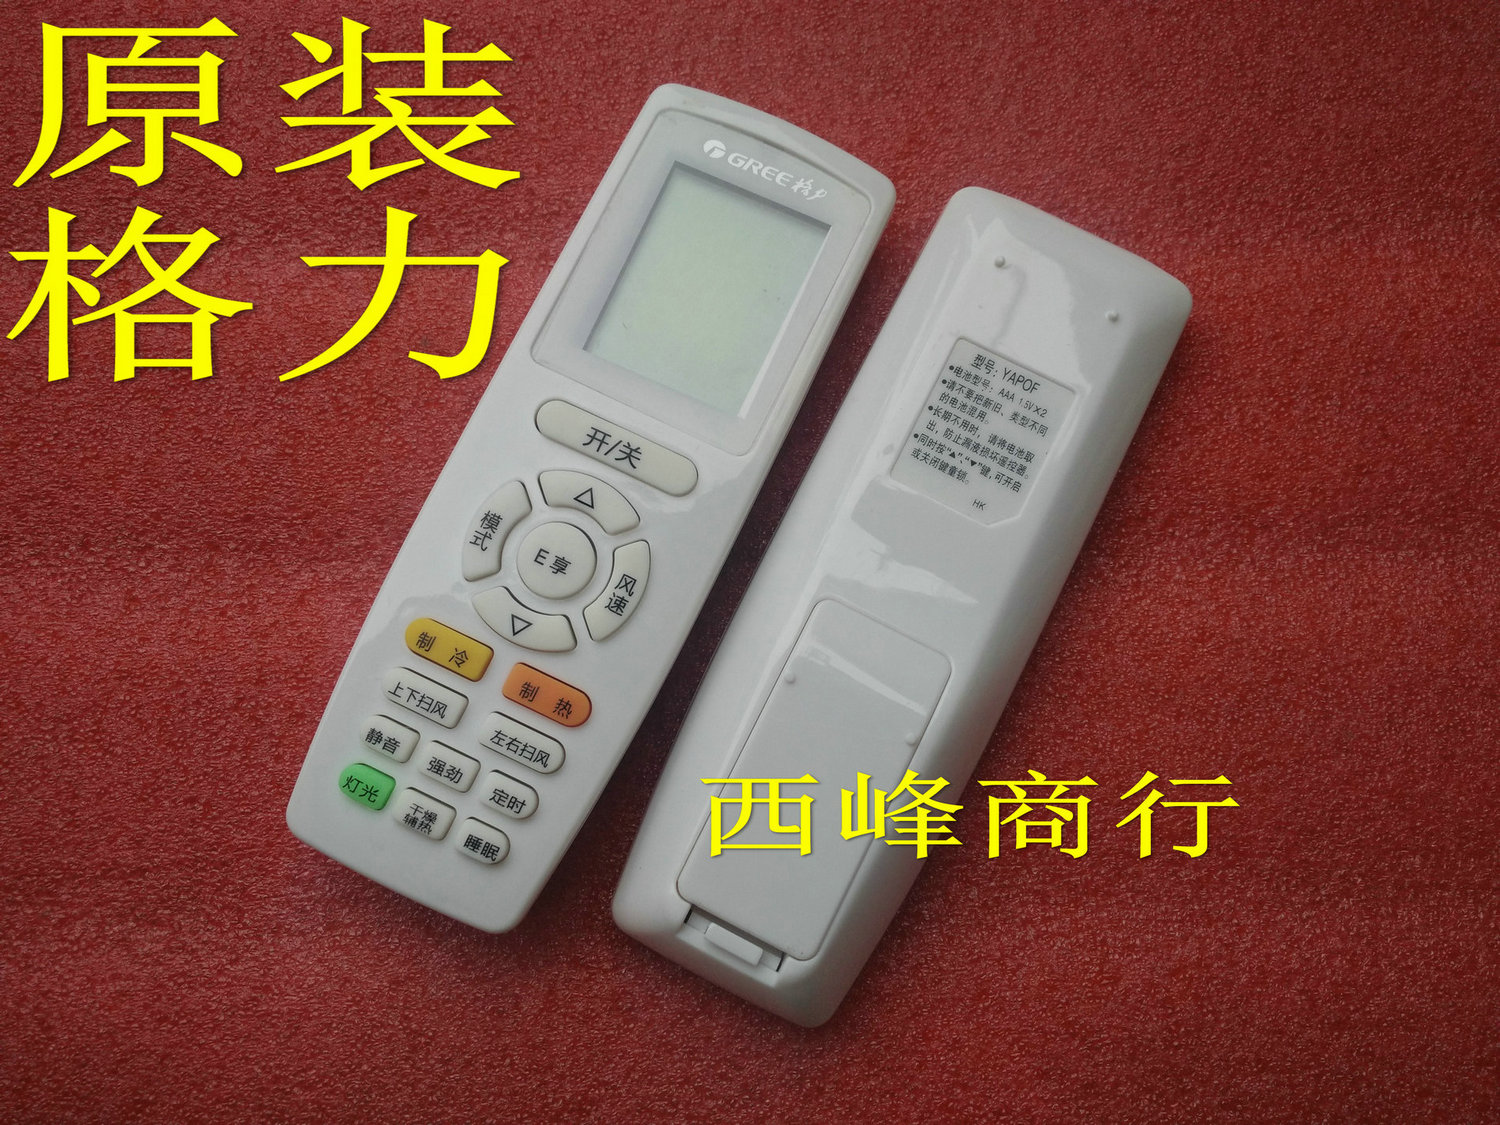 Original Gree GREE KFR-32GW/ (32594) FNAa-A11 air conditioner, 1.5 P frequency converter hang remote control